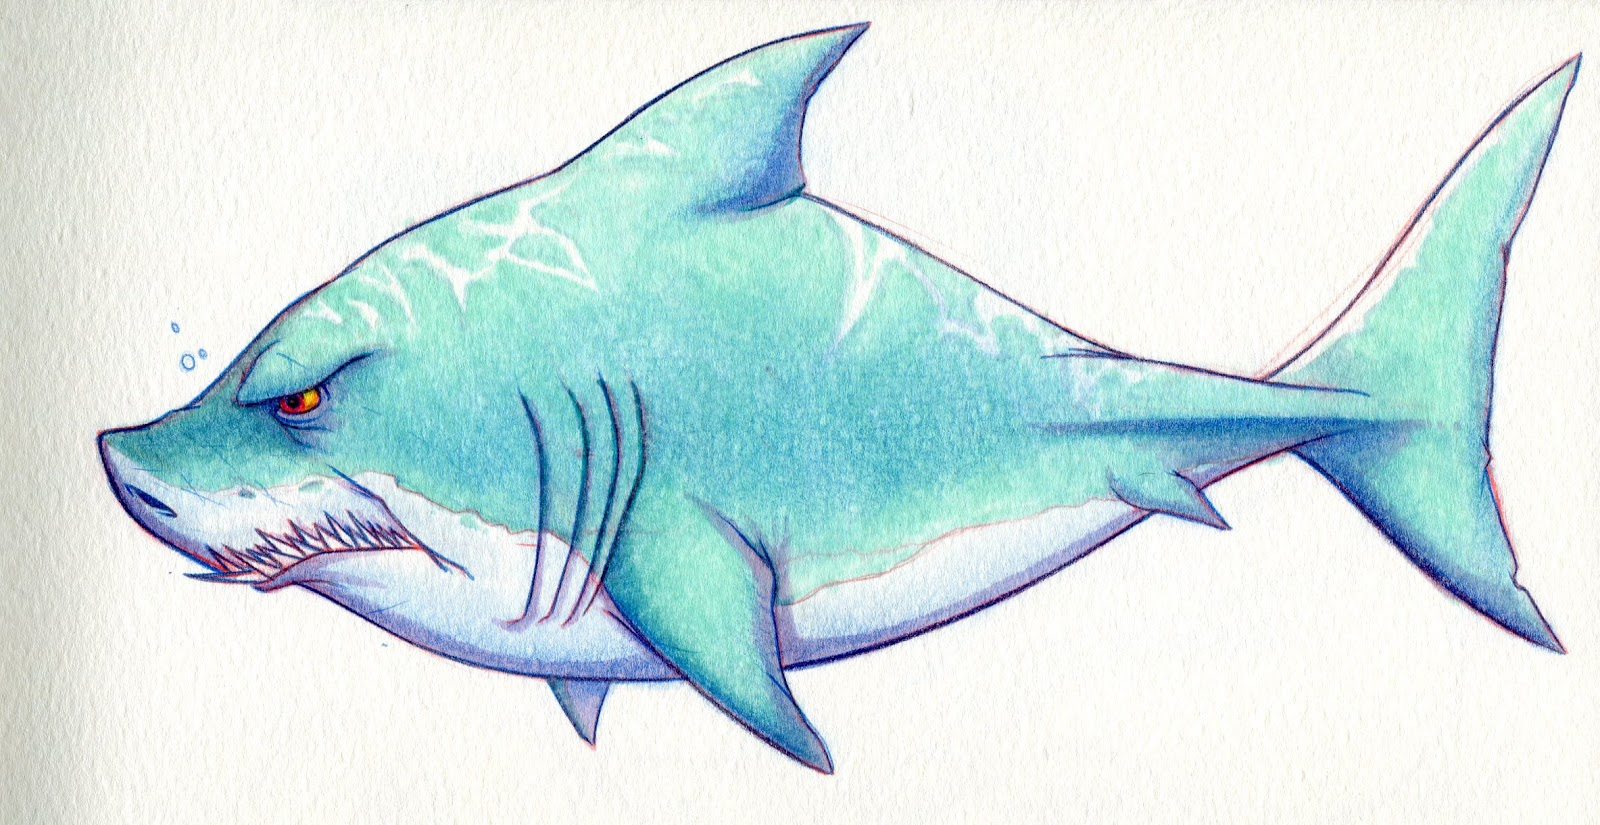 Cool Shark Drawing Drawing Pinterest Shark drawing, Shark Pictures of drawn sharks